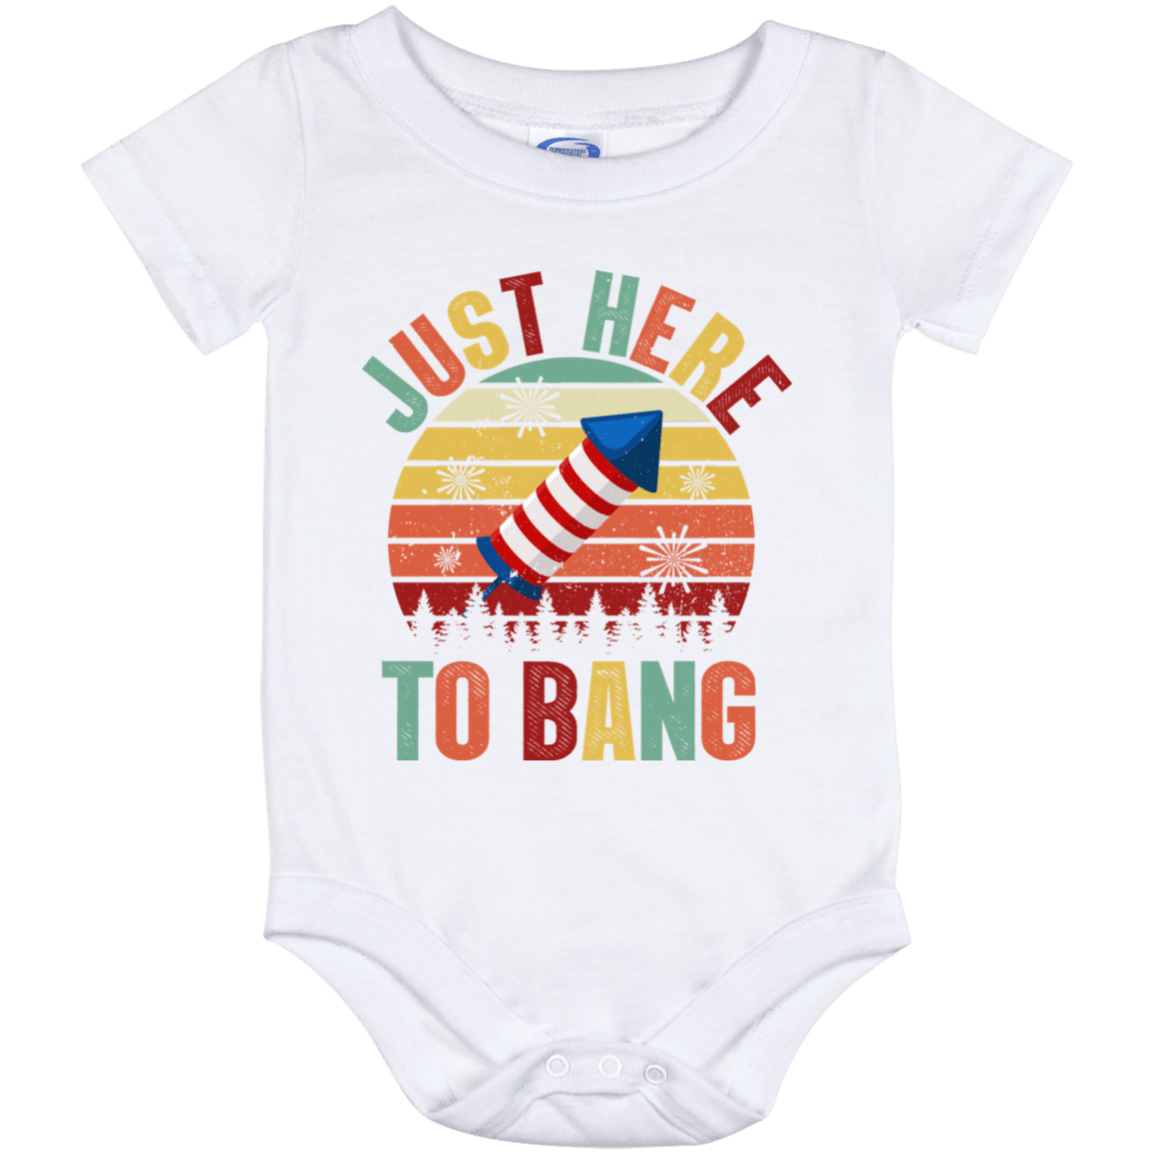 Miss USA 4th of July baby onesie